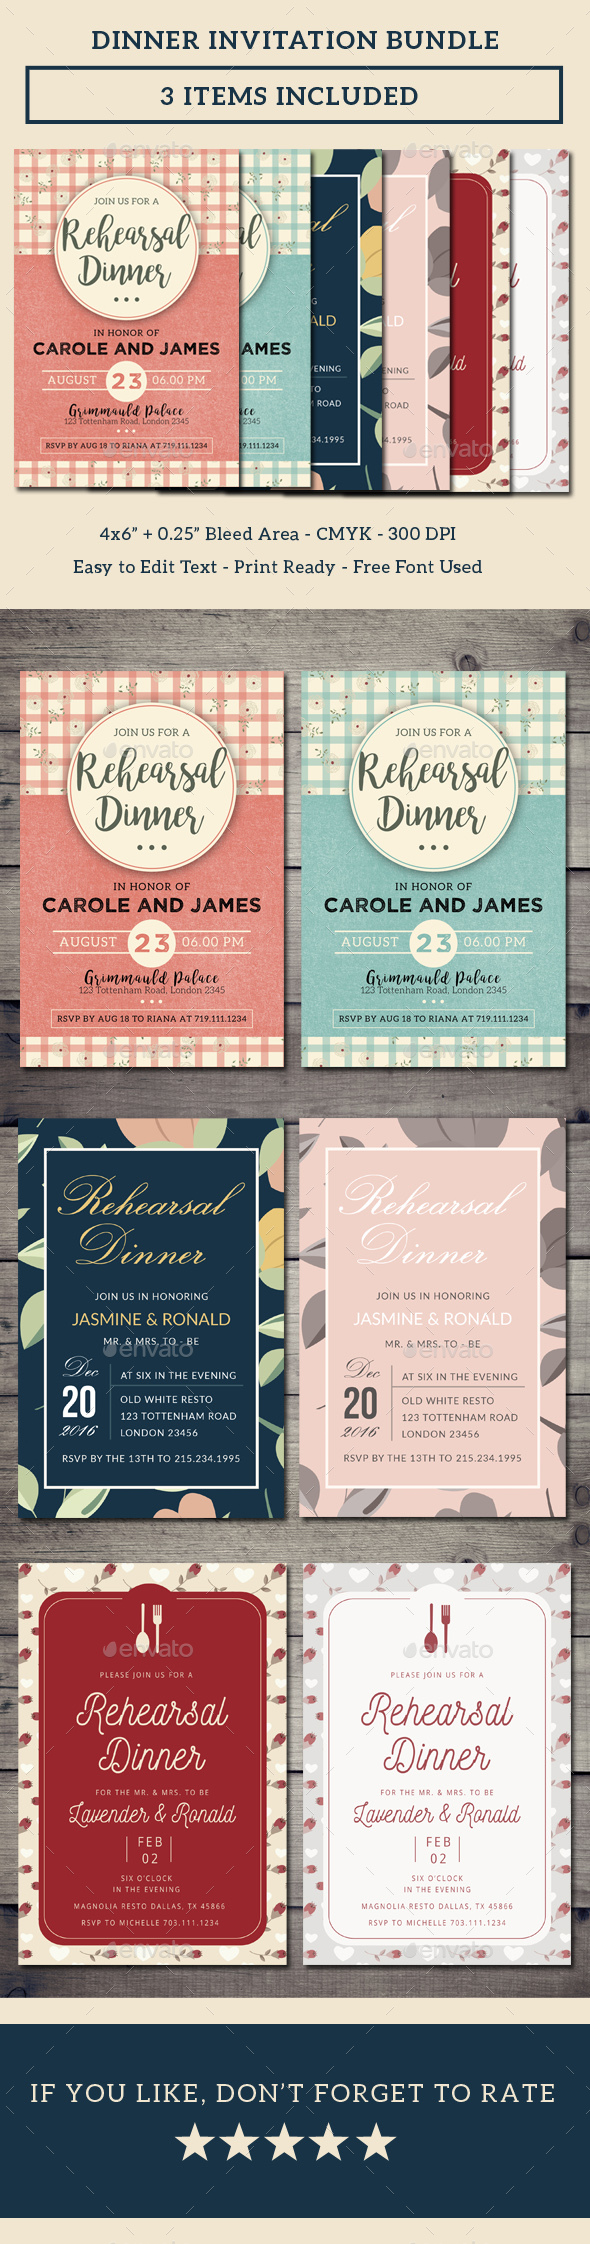 Dinner Invitation Bundle - Invitations Cards & Invites